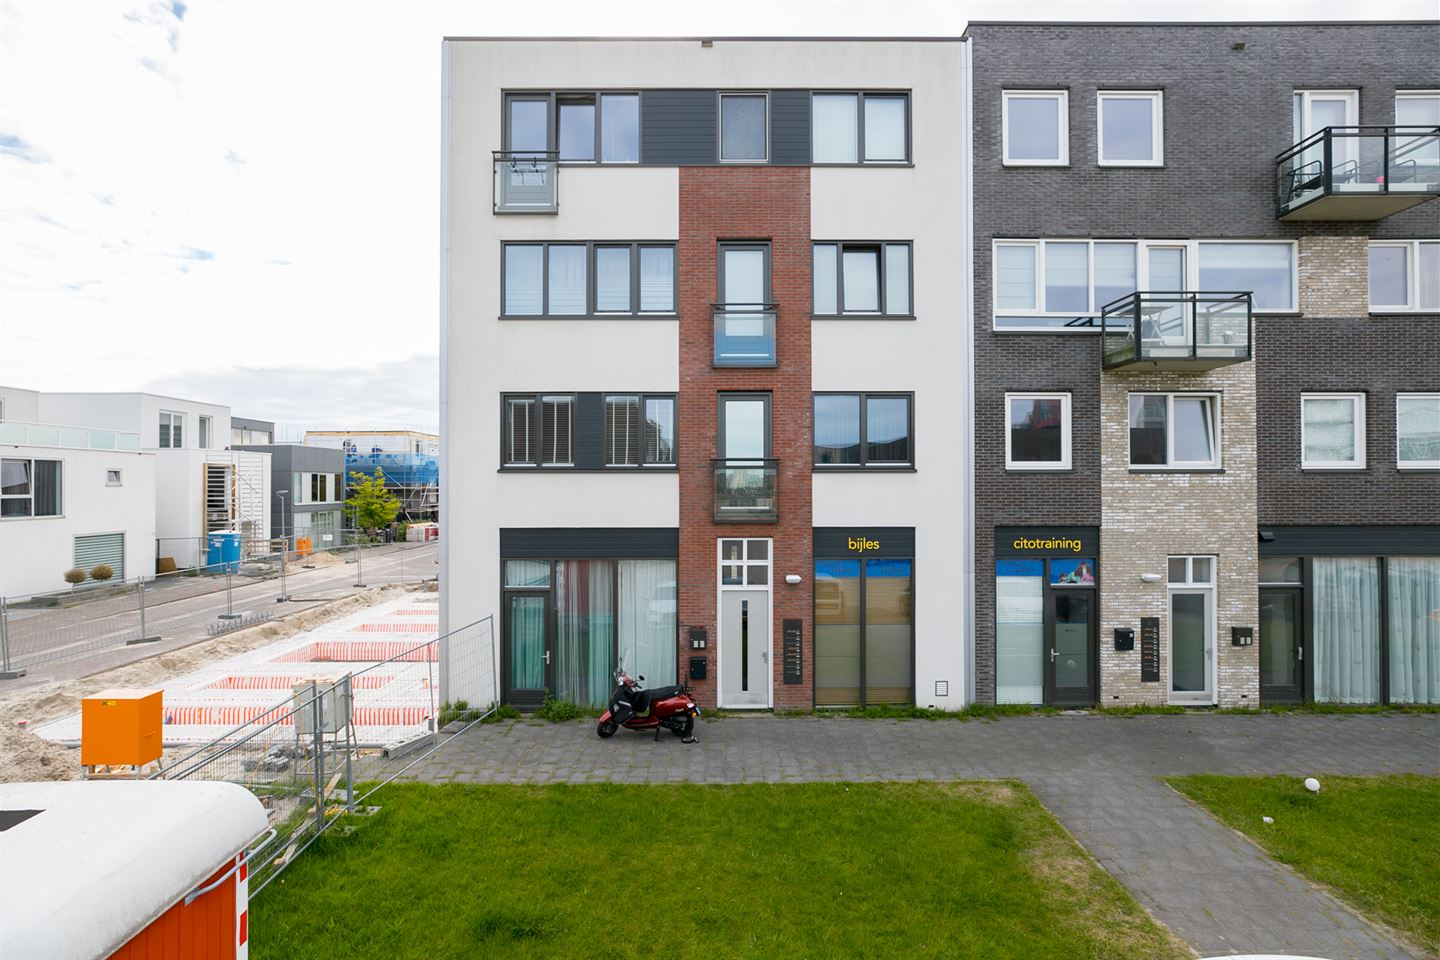 Appartement Funda Appartement Te Koop Trojestraat 9 1363 Vl Almere Funda